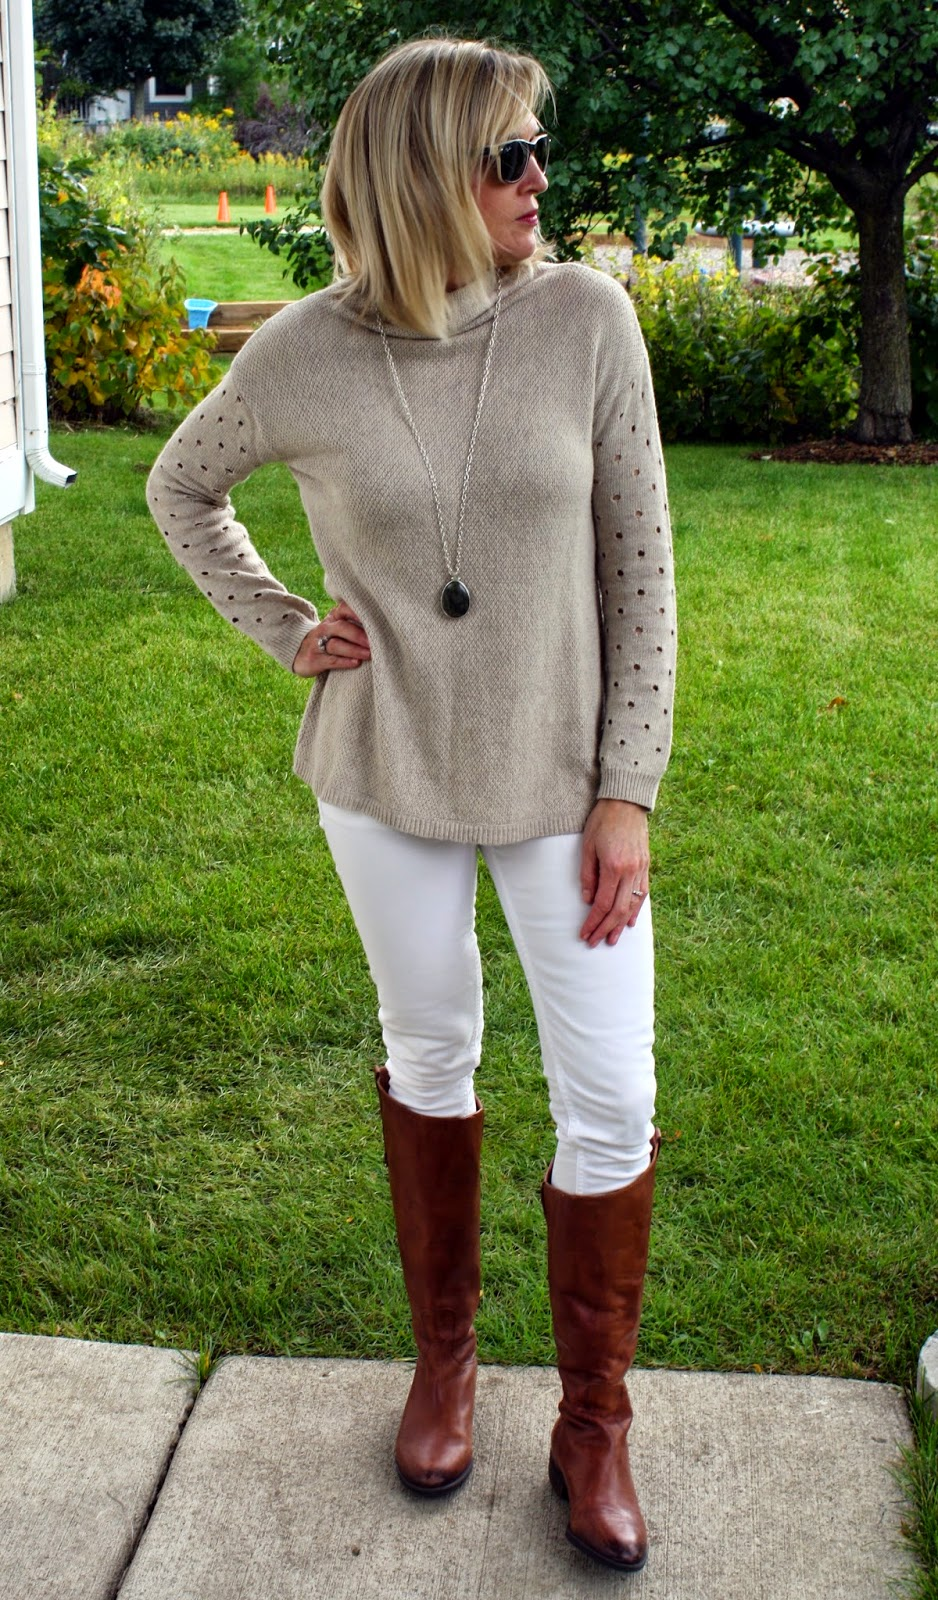 9688816f31f406 ... riding boots with my white skinny jeans for a fall transition outfit. I  think you can wear white after Labor day as long as you stay away from a  summery ...